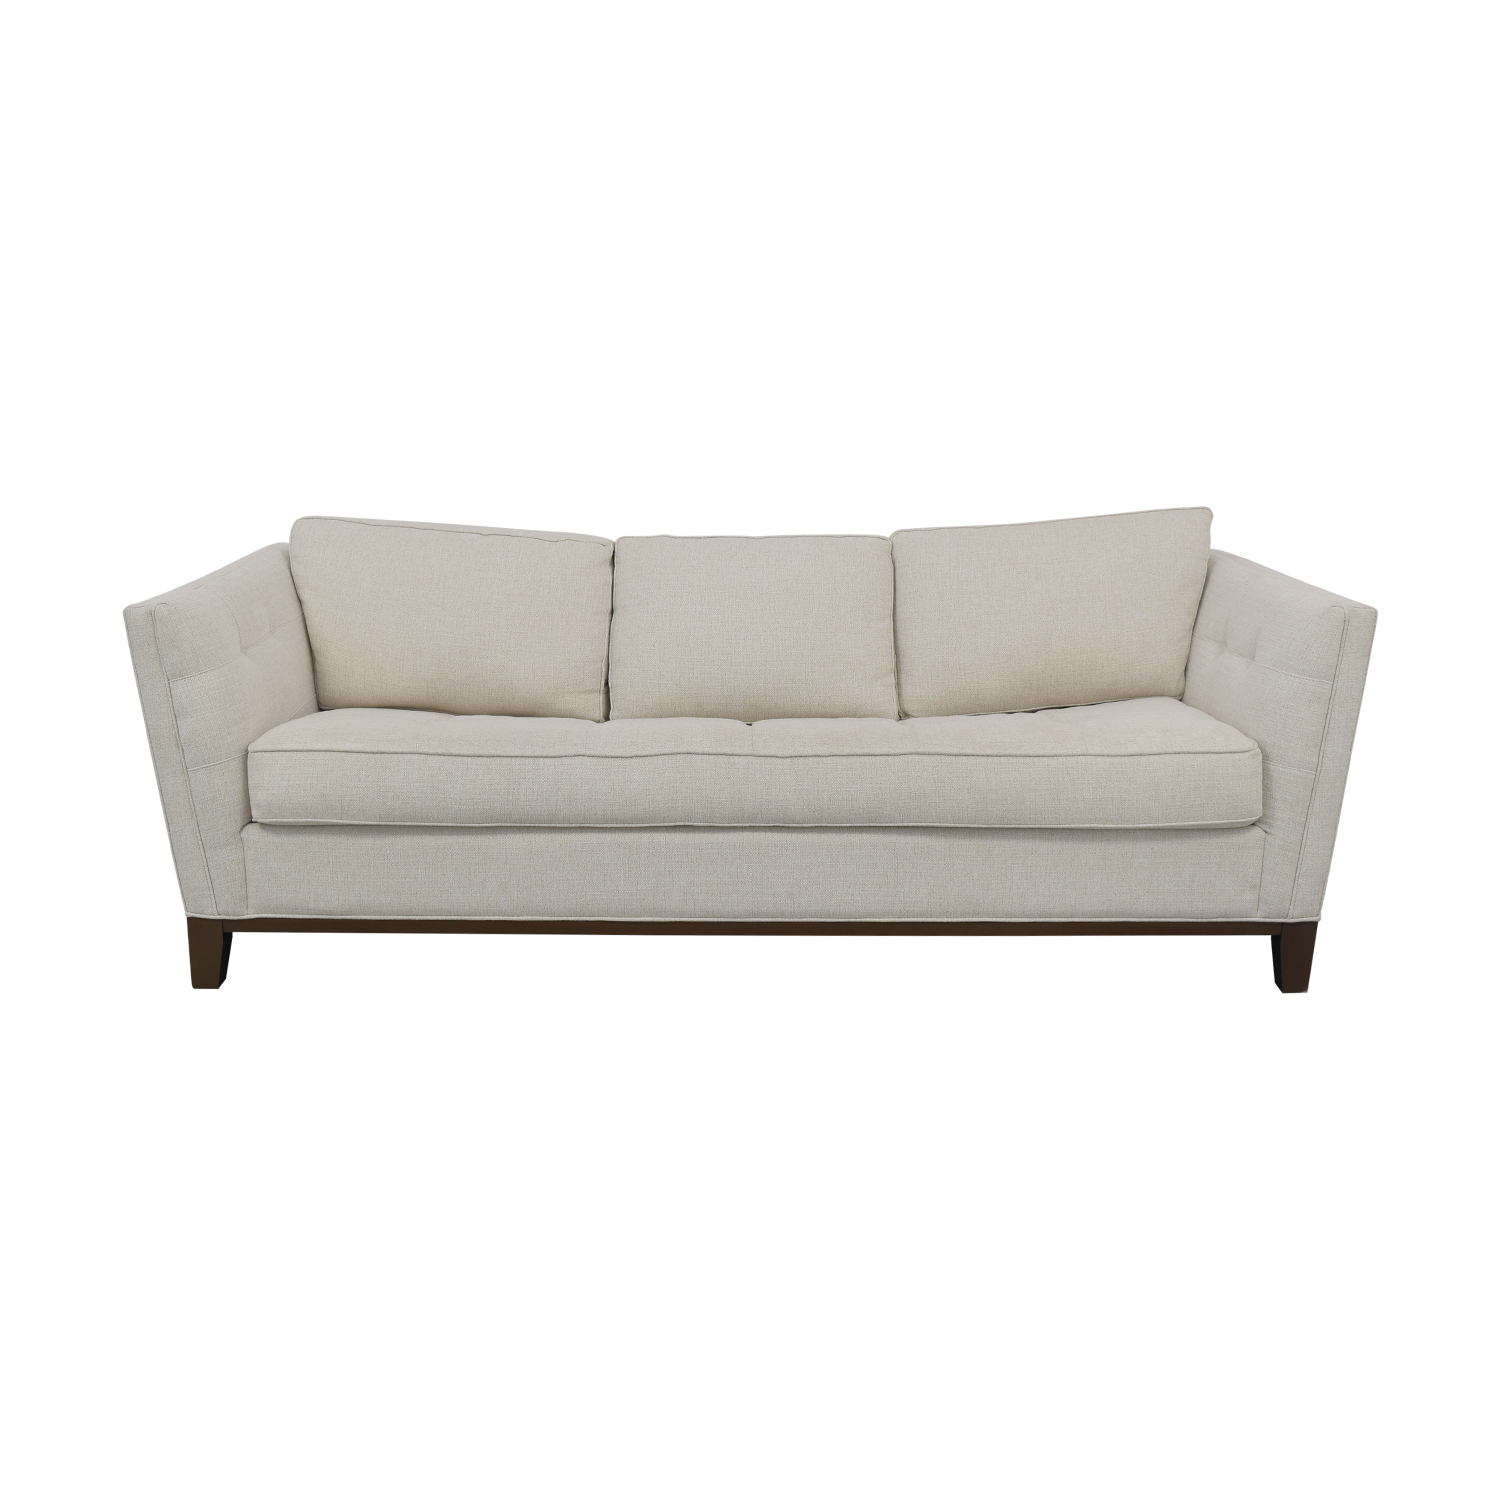 Cindy Crawford Home Cindy Crawford Home Park Boulevard Sofa used